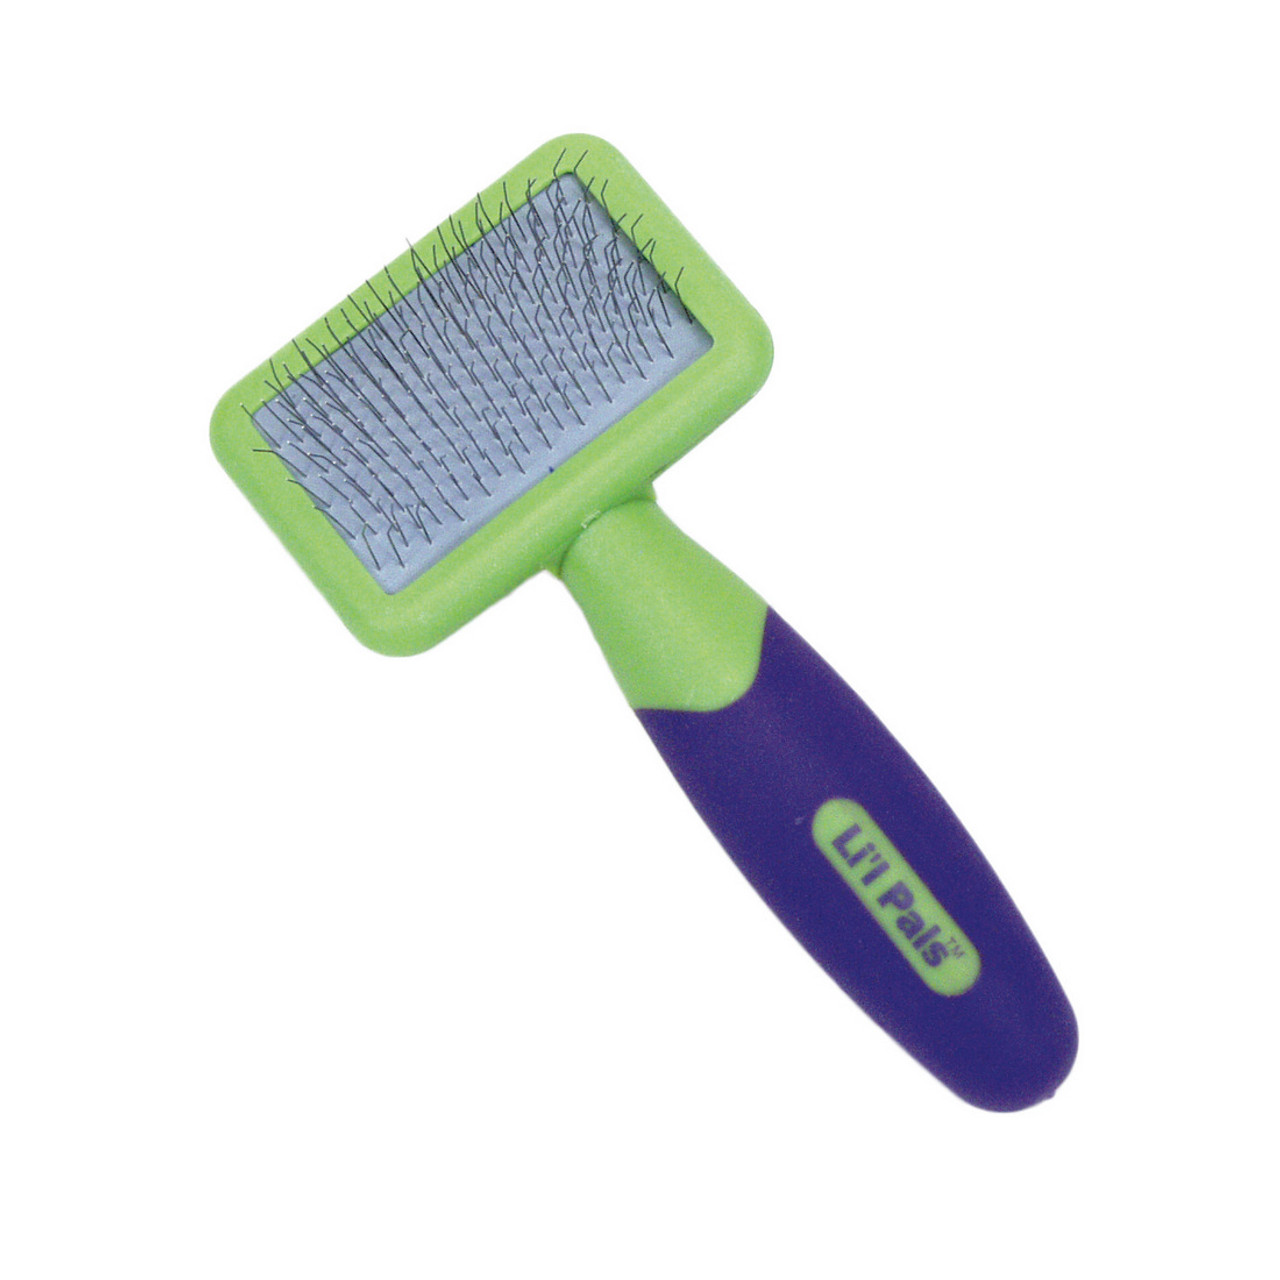 Li'l Pals Dog Slicker Brush with Coated Tips